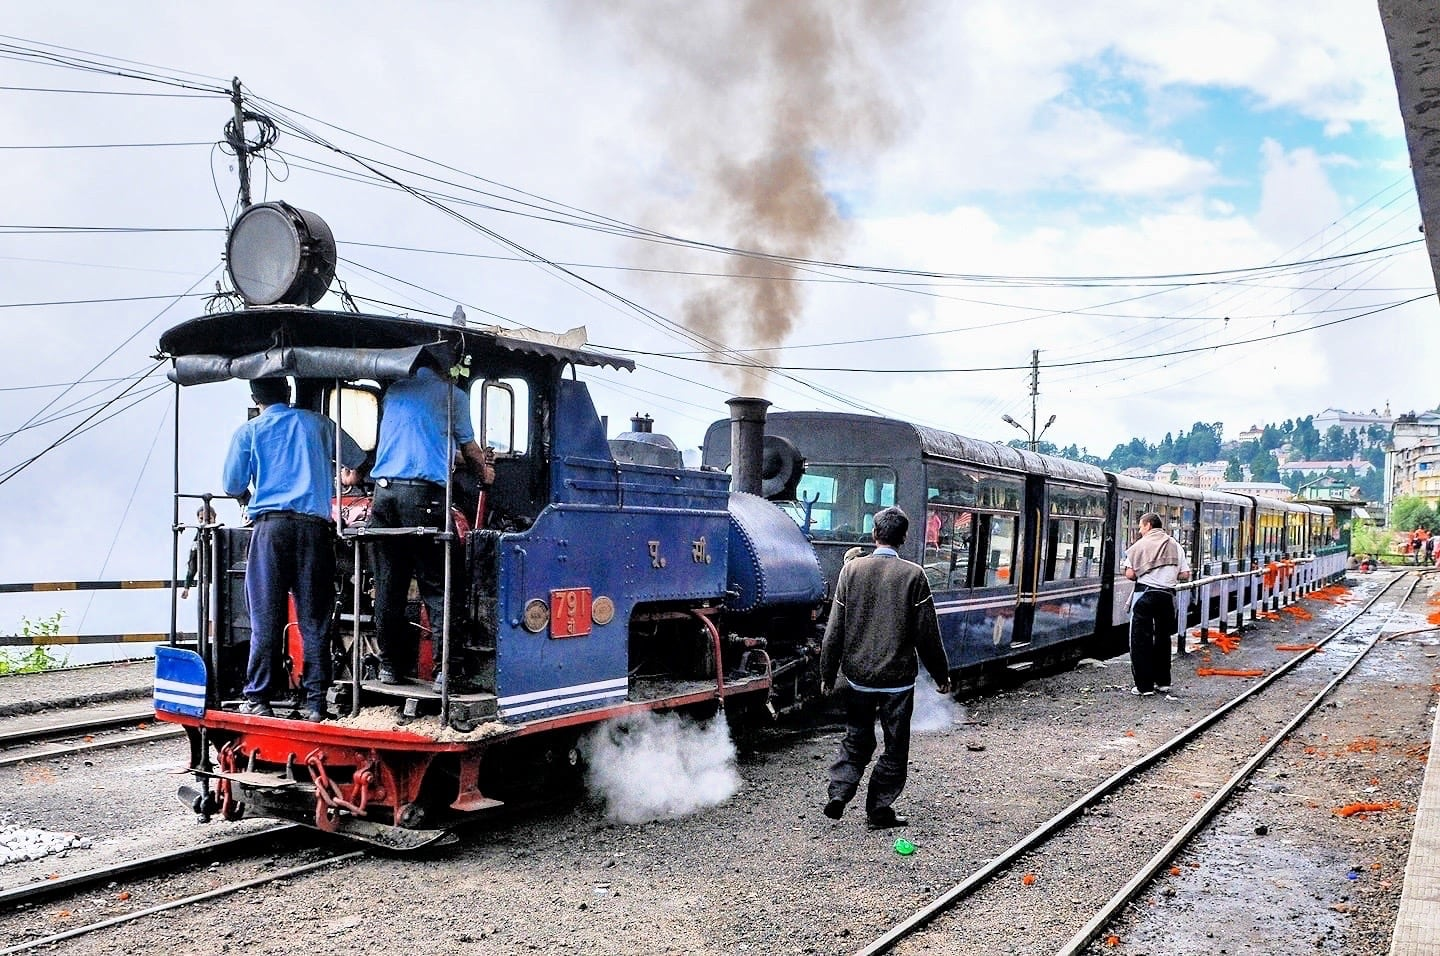 Darjeeling steam locomotive